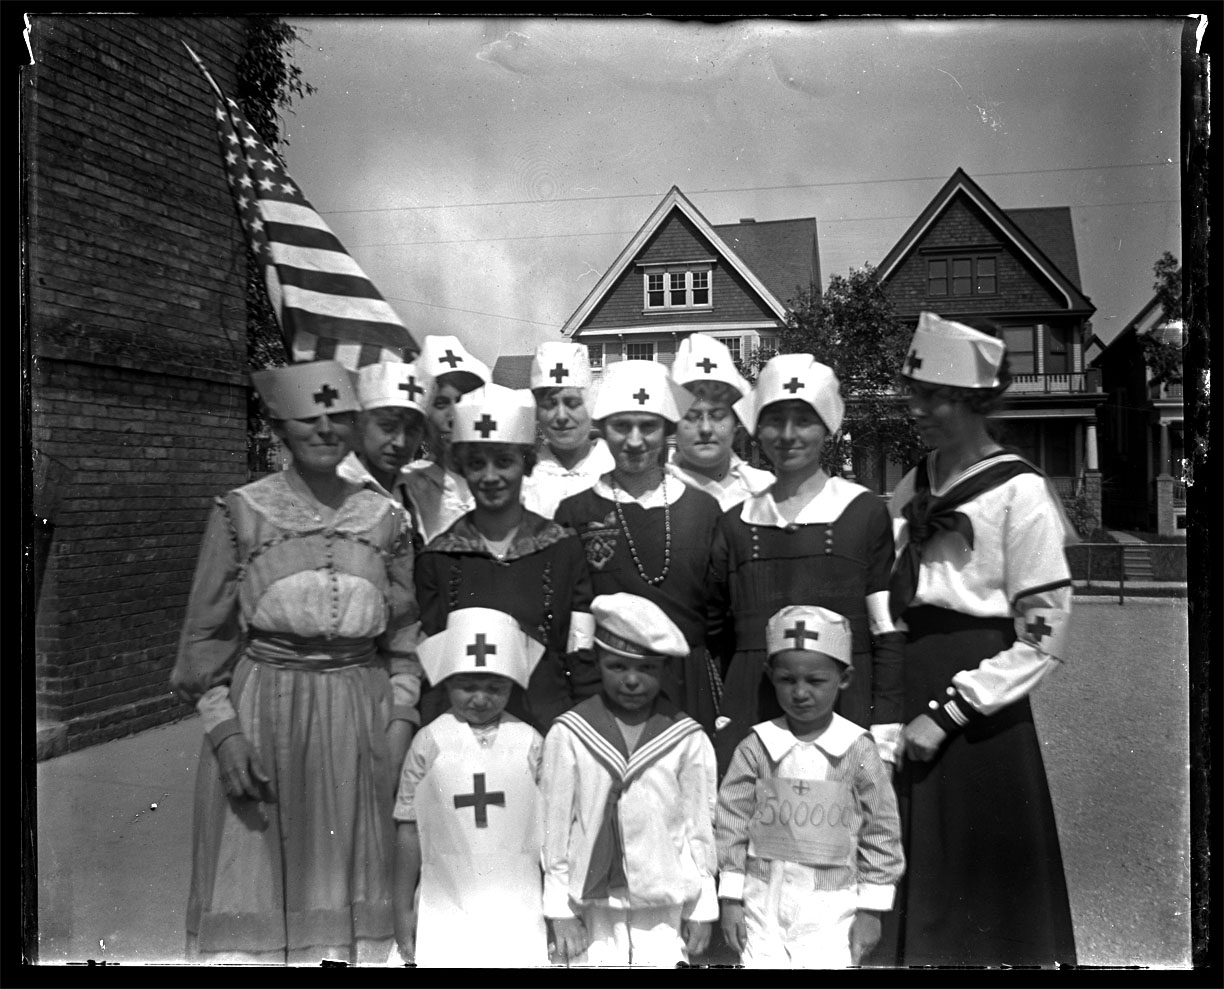 The Red Cross Volunteers C.1910 from original 5x7 glass plate negative